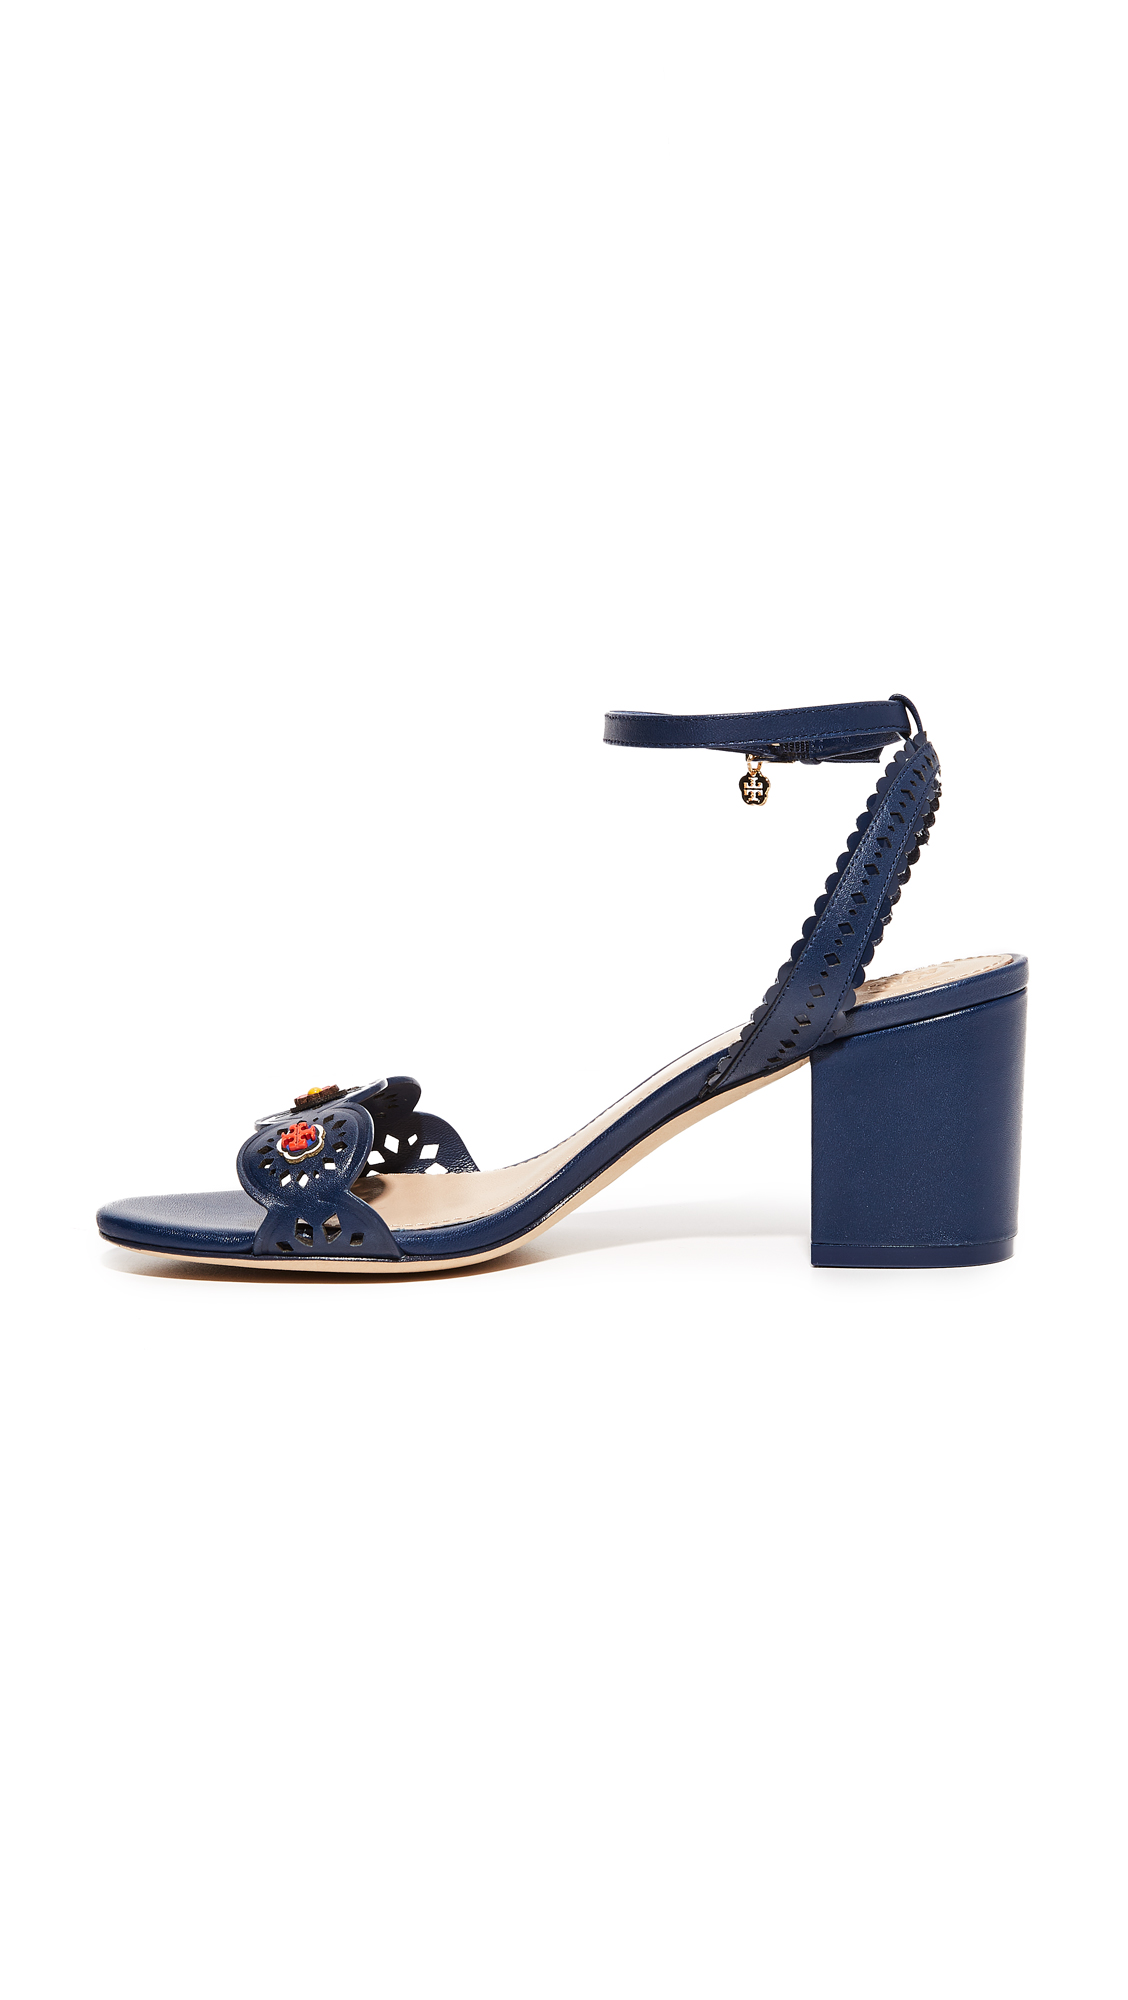 fb51a28c166 Tory Burch Marguerite Perforated City Sandals